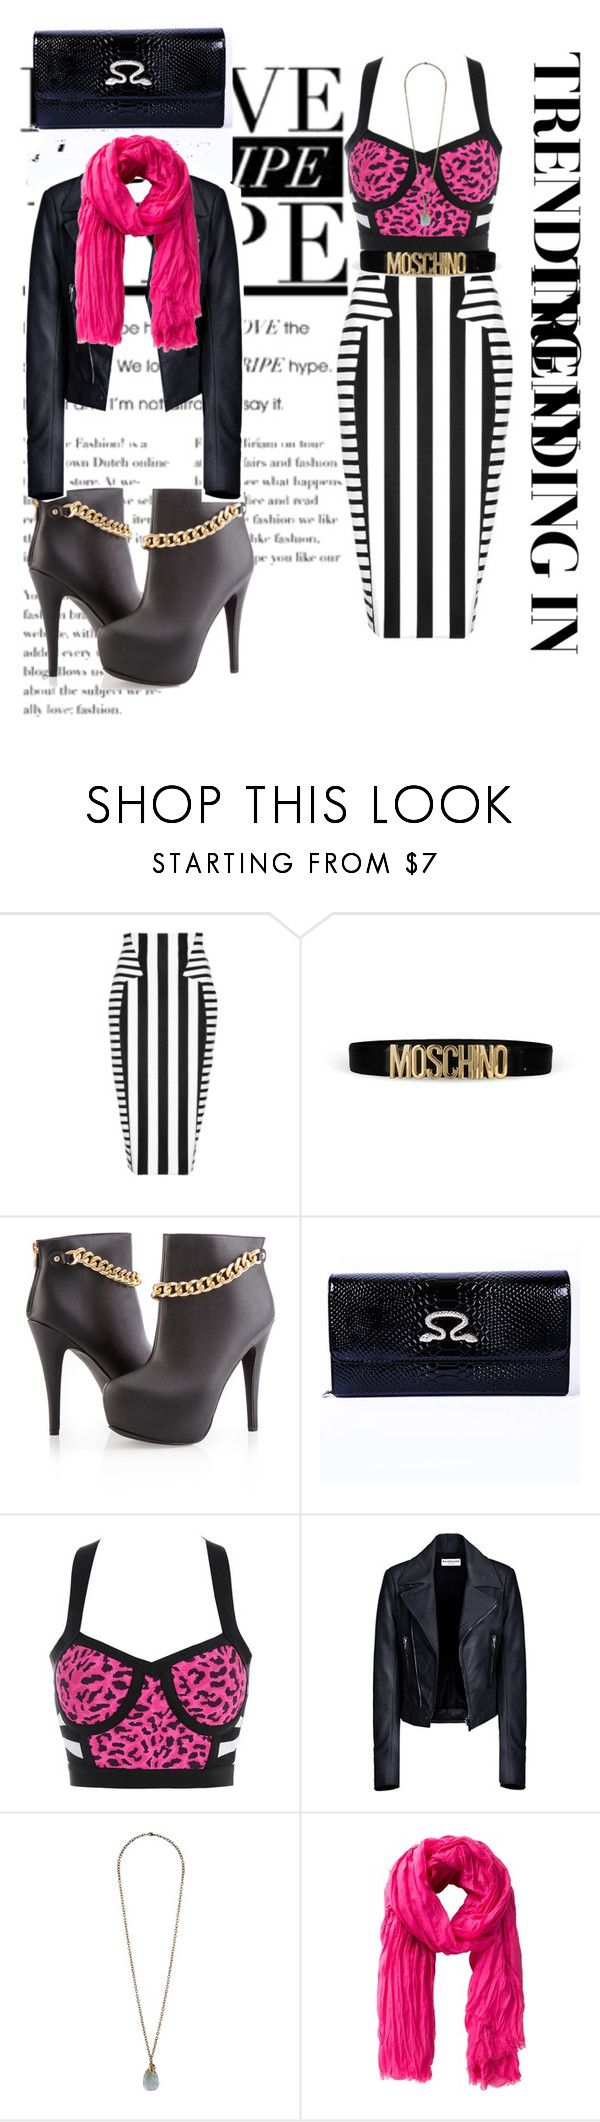 """Wild"" by msgoodgirl92 ❤ liked on Polyvore featuring Cushnie Et Ochs, Moschino, Ashley Stewart, Posh Girl, Balenciaga, Forever 21 and MANGO"